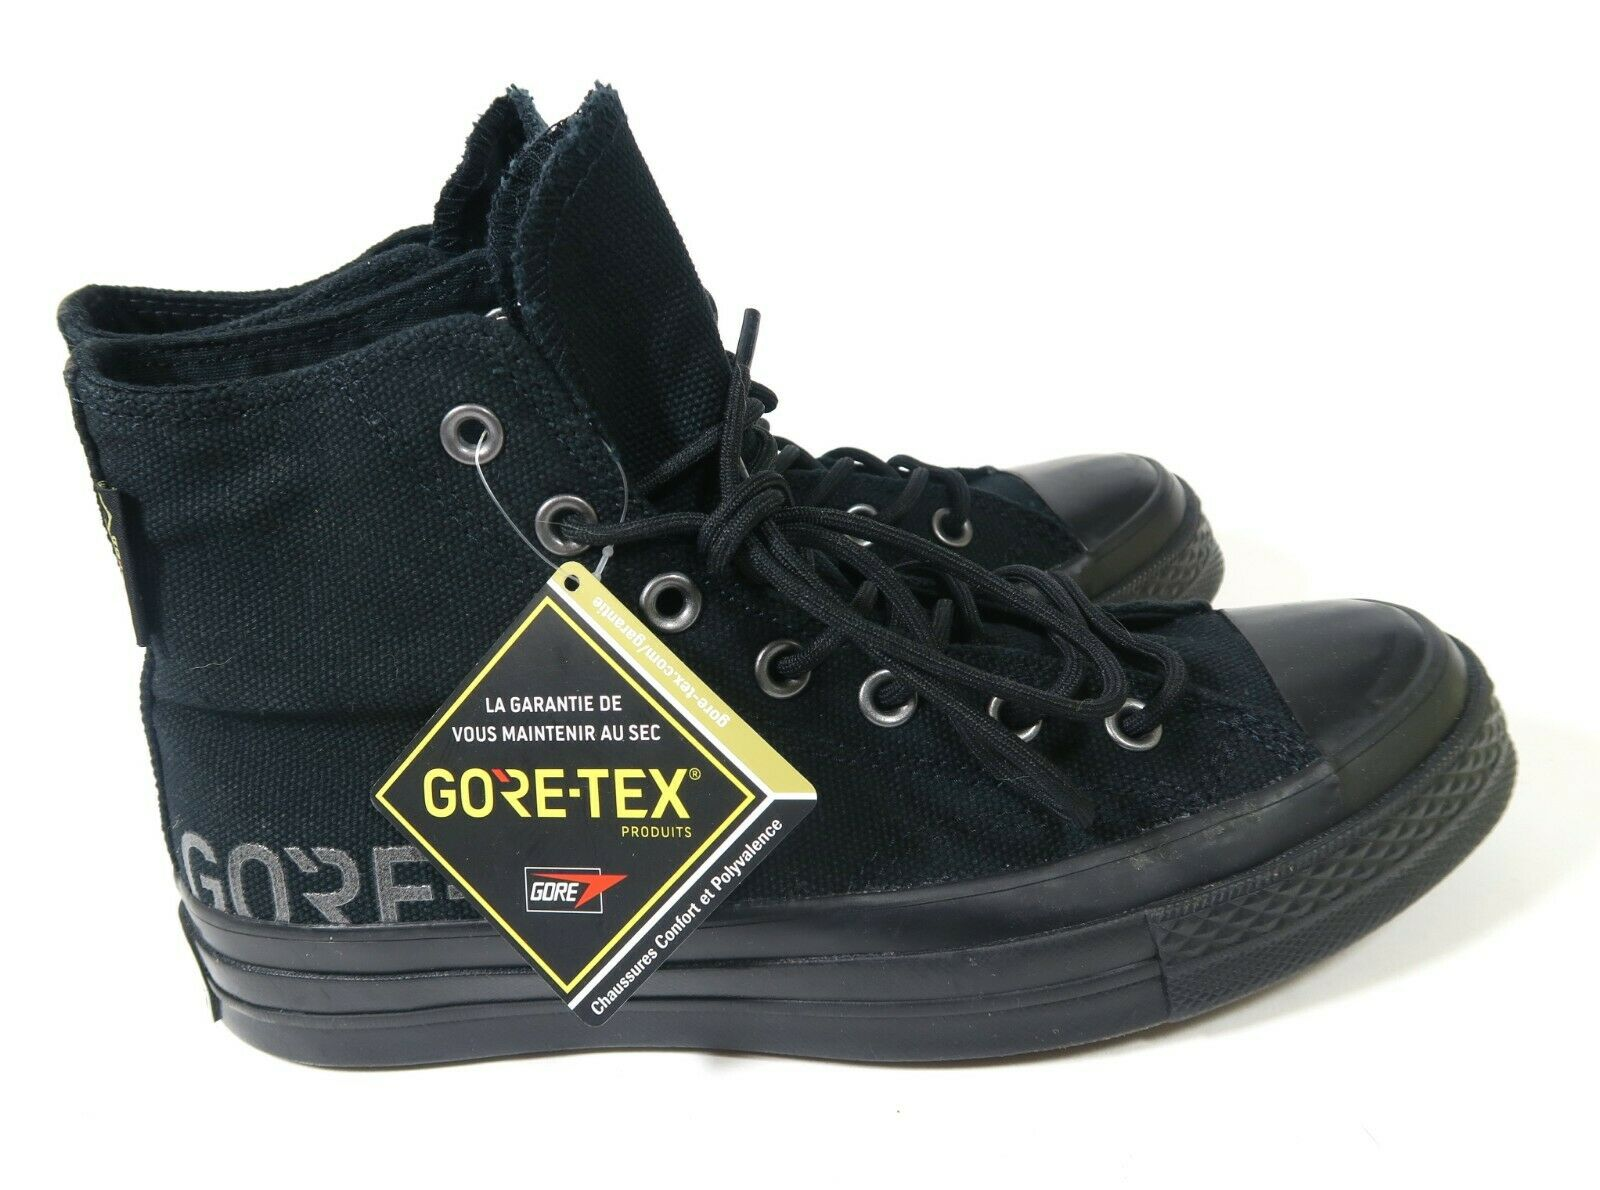 Converse First String Chuck Taylor All Star 70 Hi Gore-Tex Black 162350C Mens 6